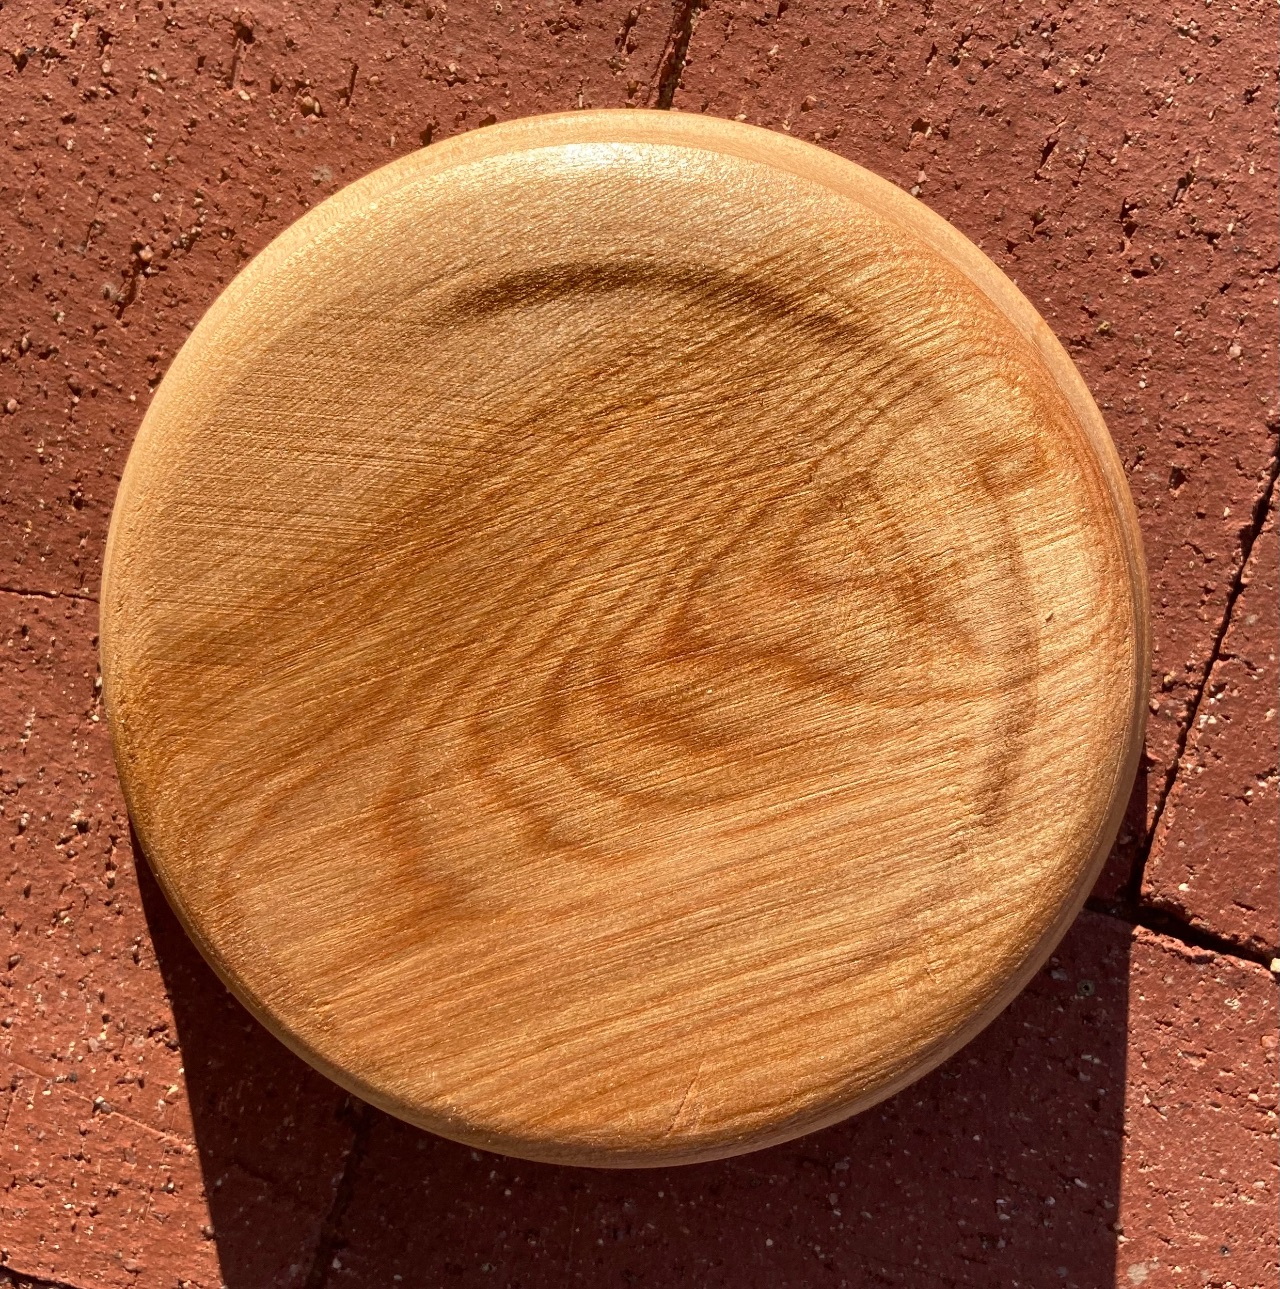 Turned birch bowl, bottom view